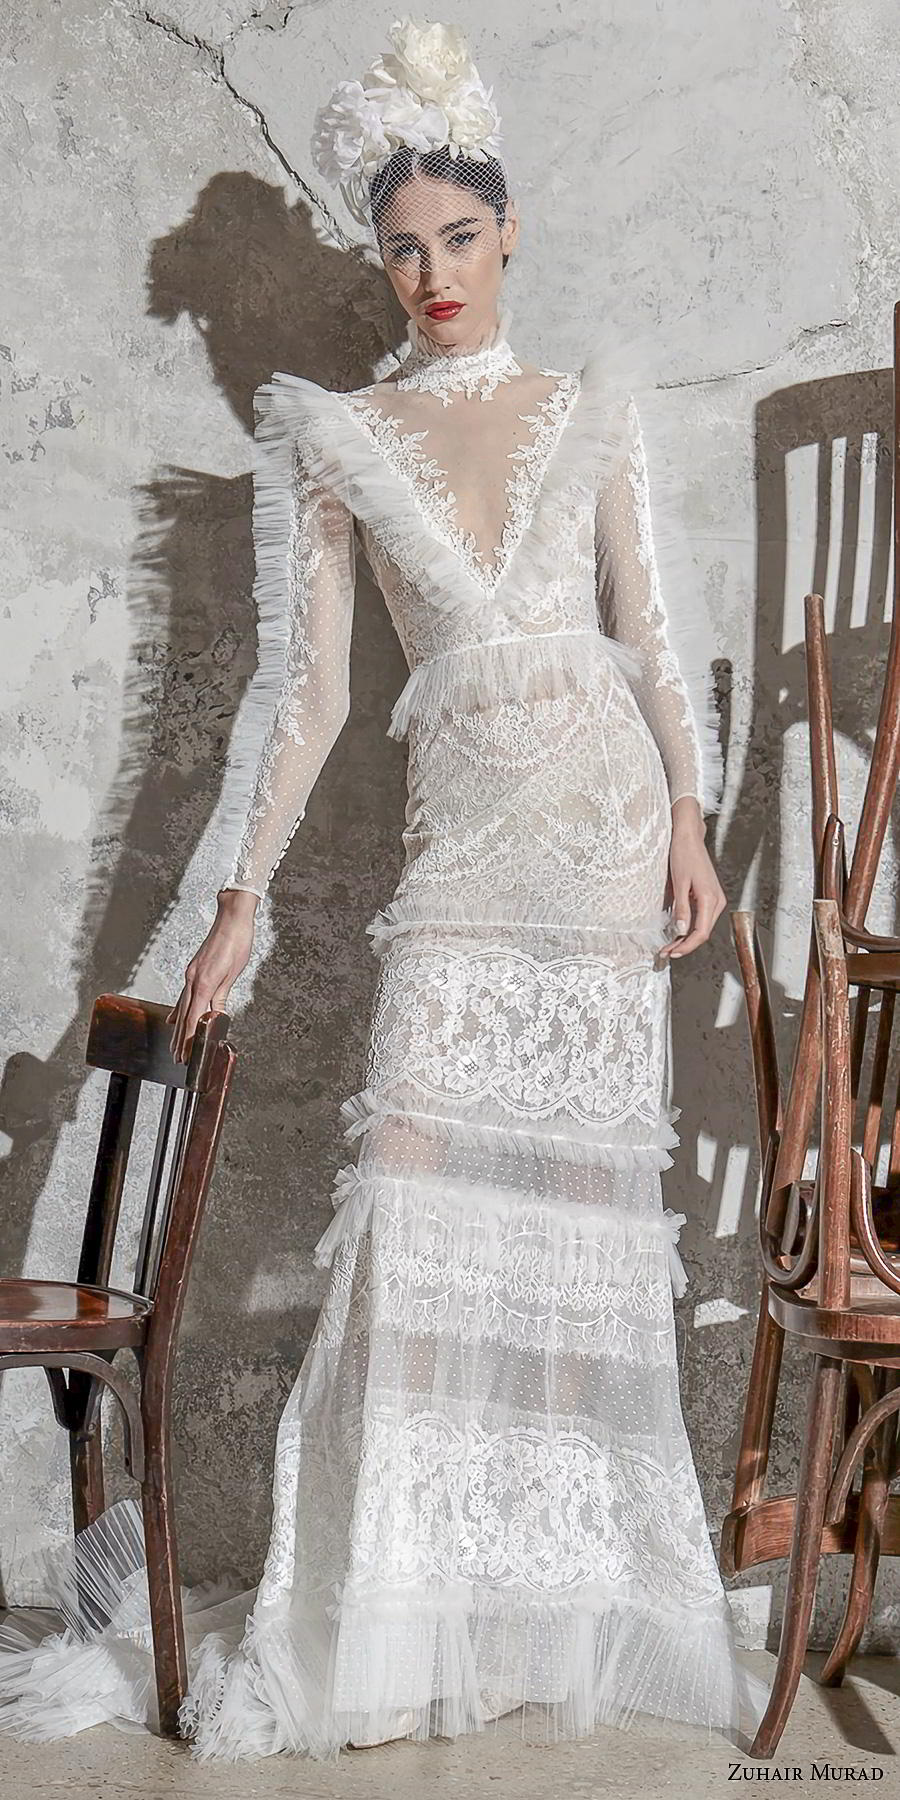 zuhair murad spring 2020 bridal long sleeves illusion high neck v neck full embellishment vintage spanish sheath wedding dress (12) mv